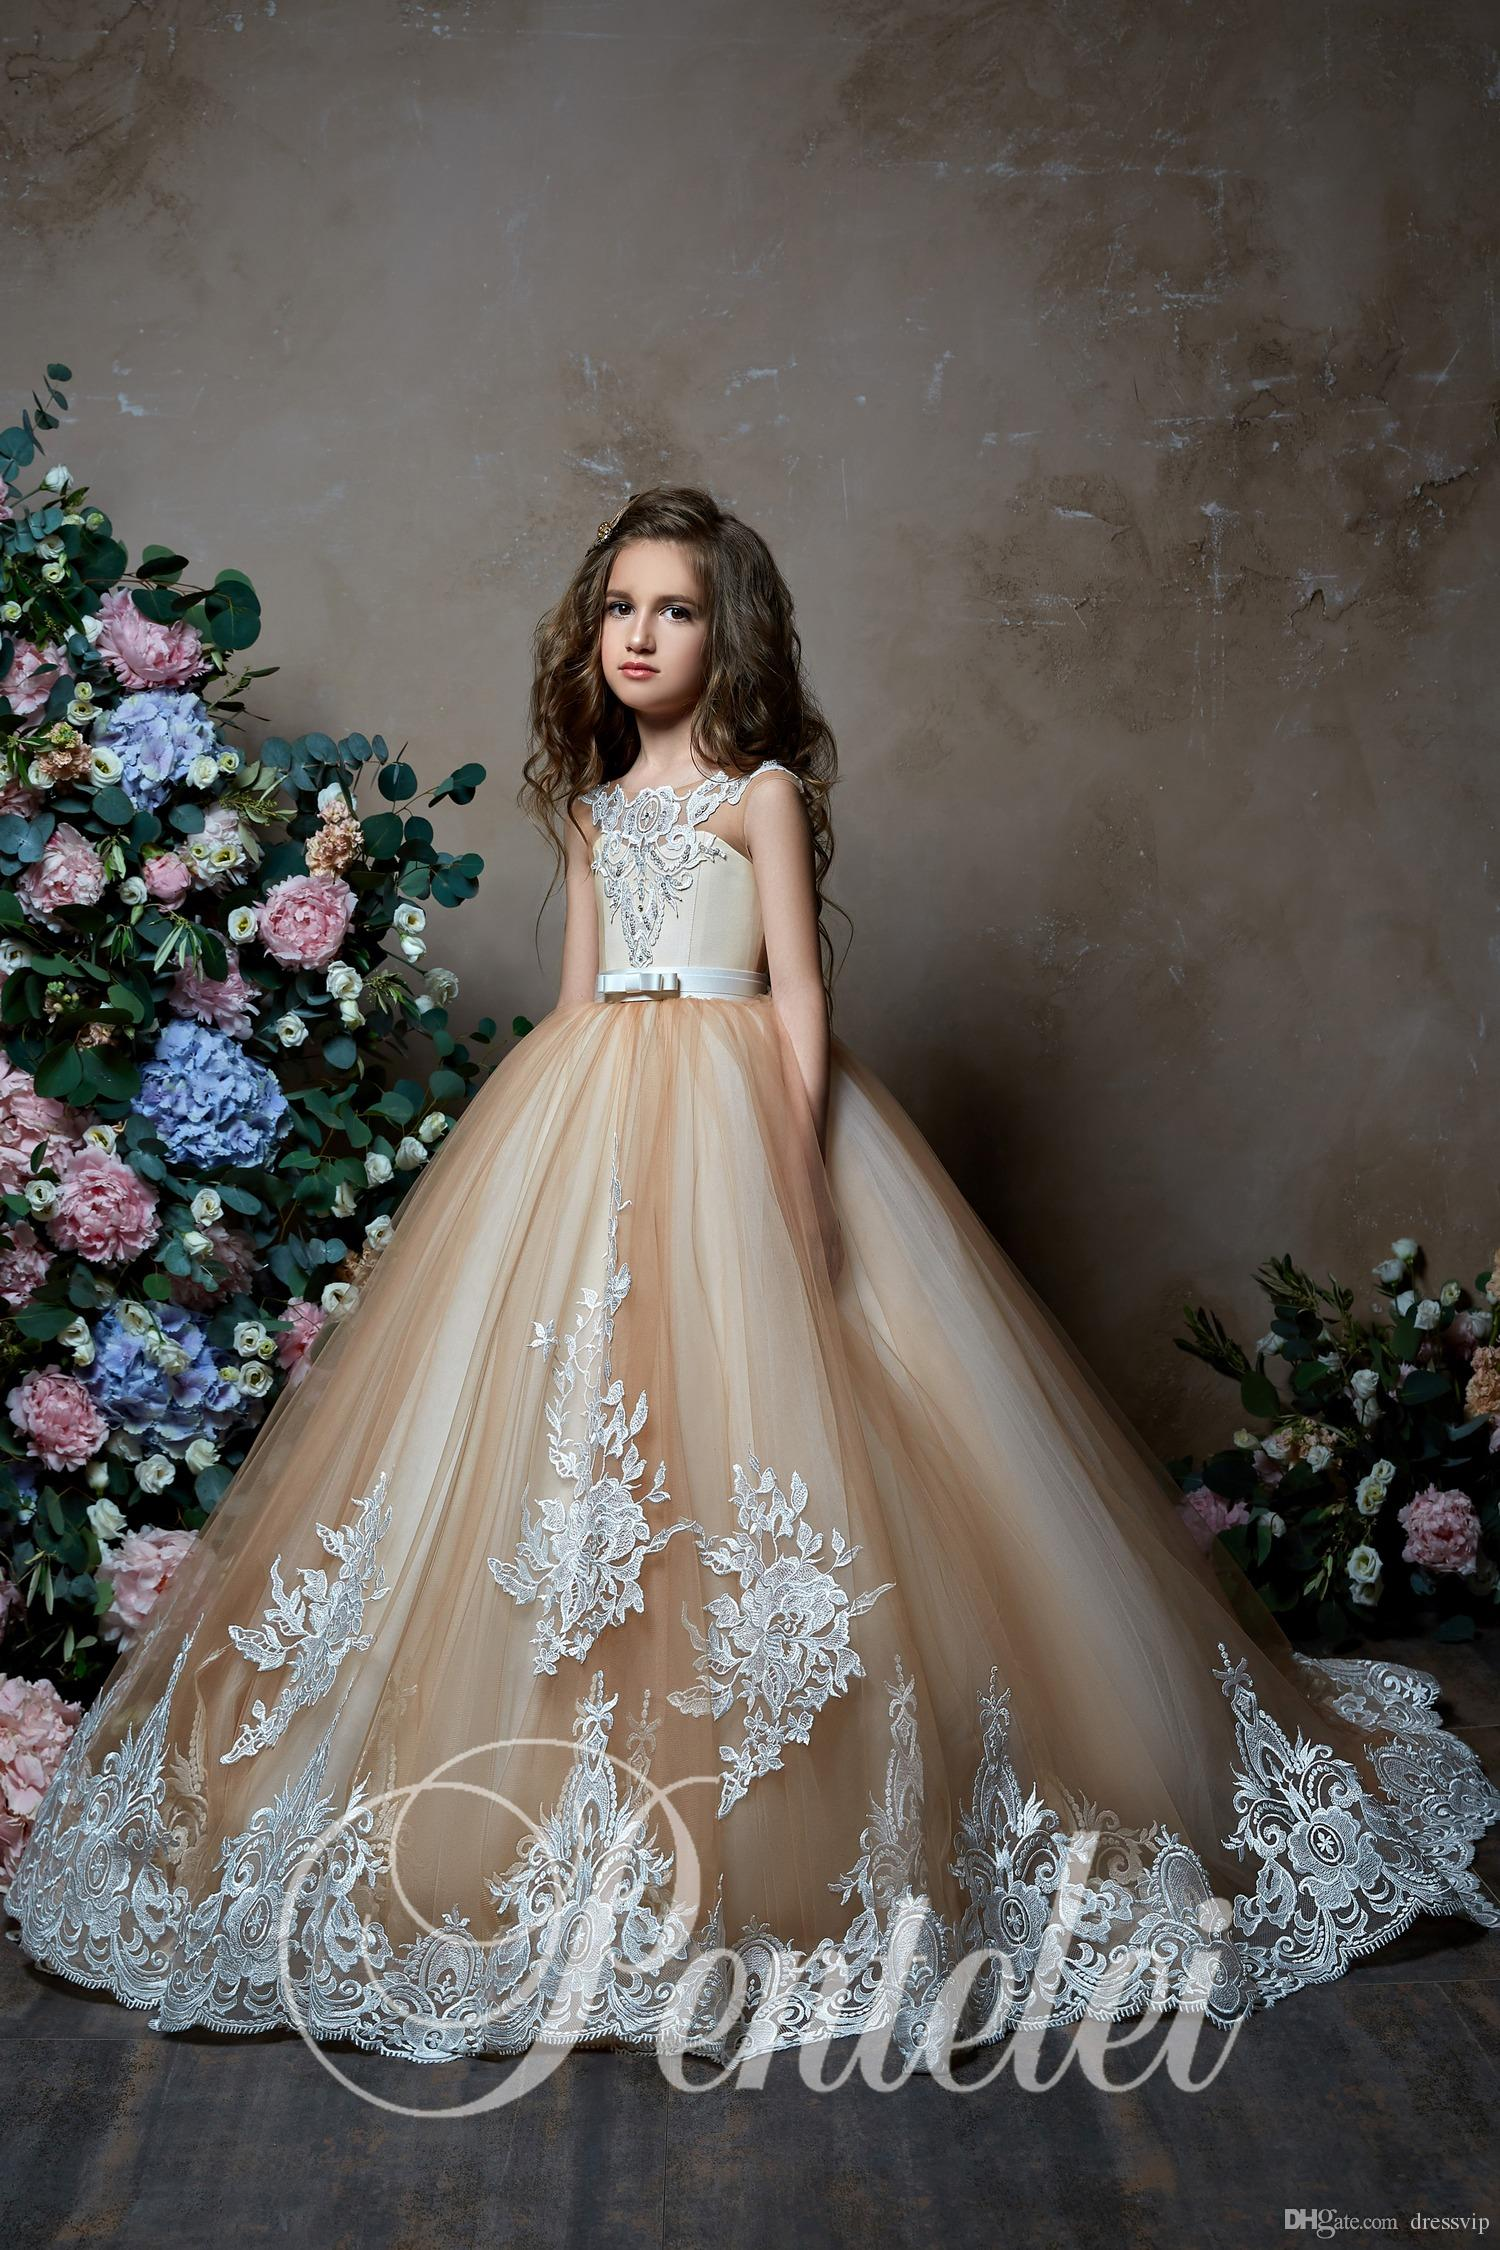 Pentelei 2019 Champagne Flower Girl Dresses For Weddings Jewel Neck Lace Little Kids Baby Gowns First Communion Dress Girls Pageant Gowns